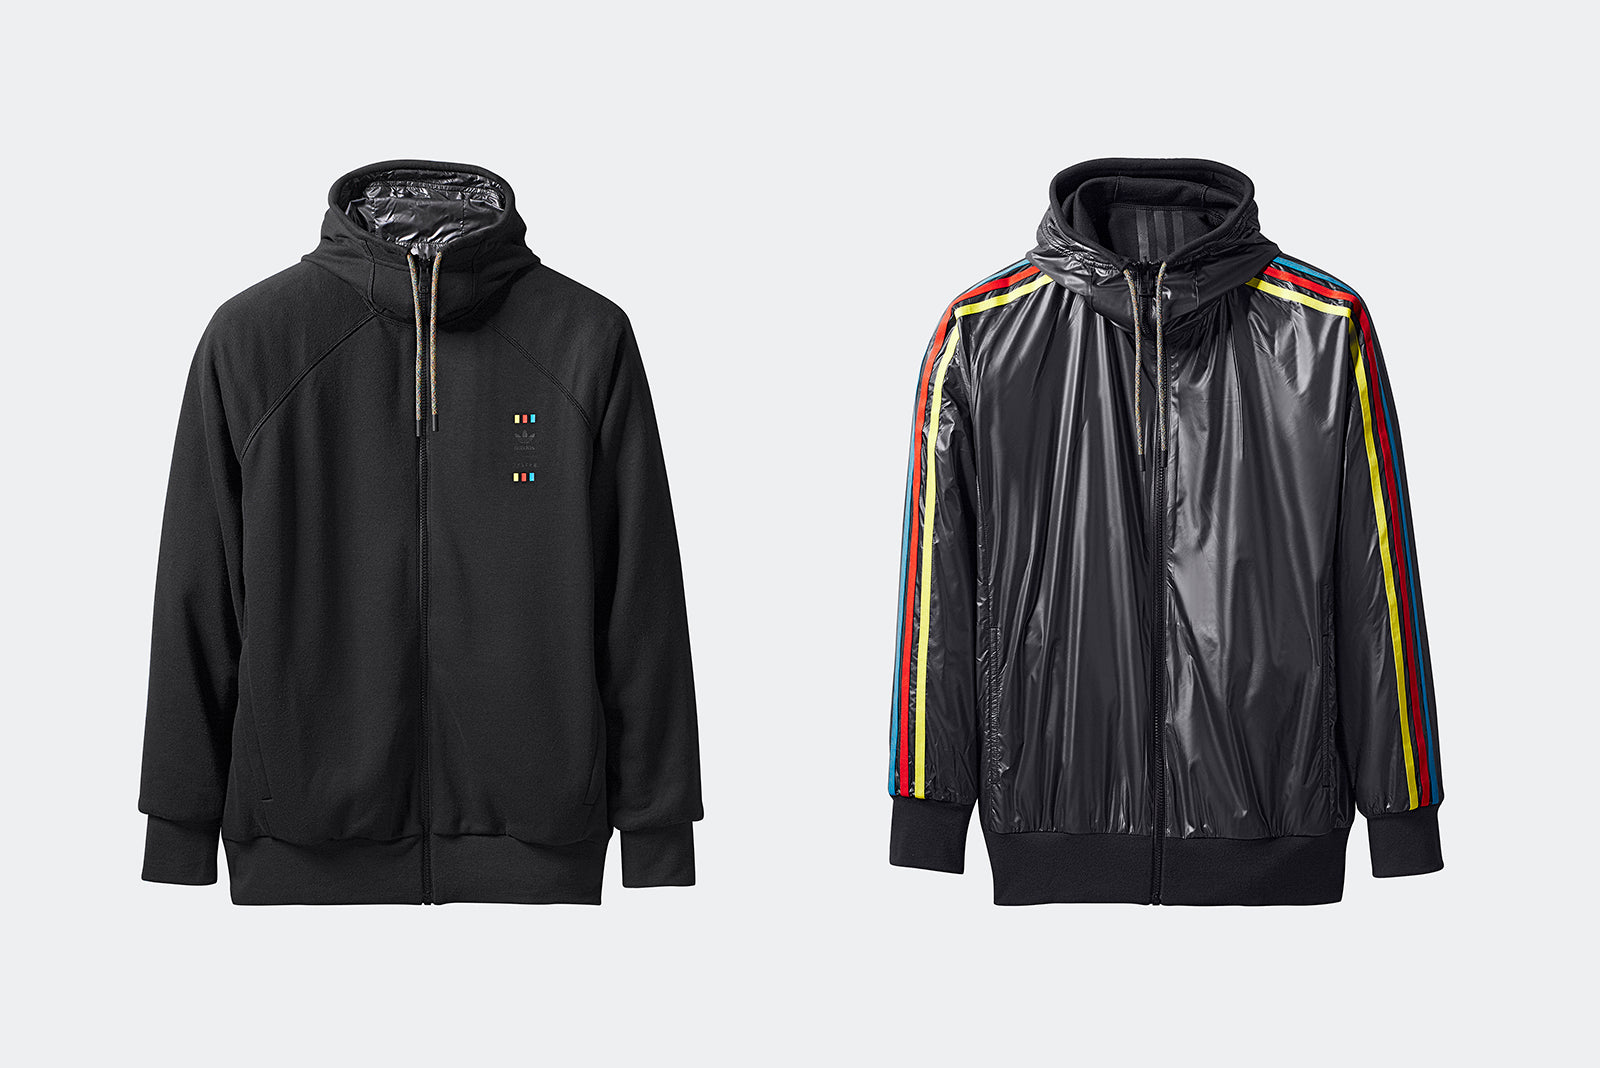 d1d662301 adidas Originals Reversible Hooded Sweatshirt x Oyster Holding DN8076 Black  Price: £129.00. Launch: Thursday 27th of September ONLINE; 23:00BST